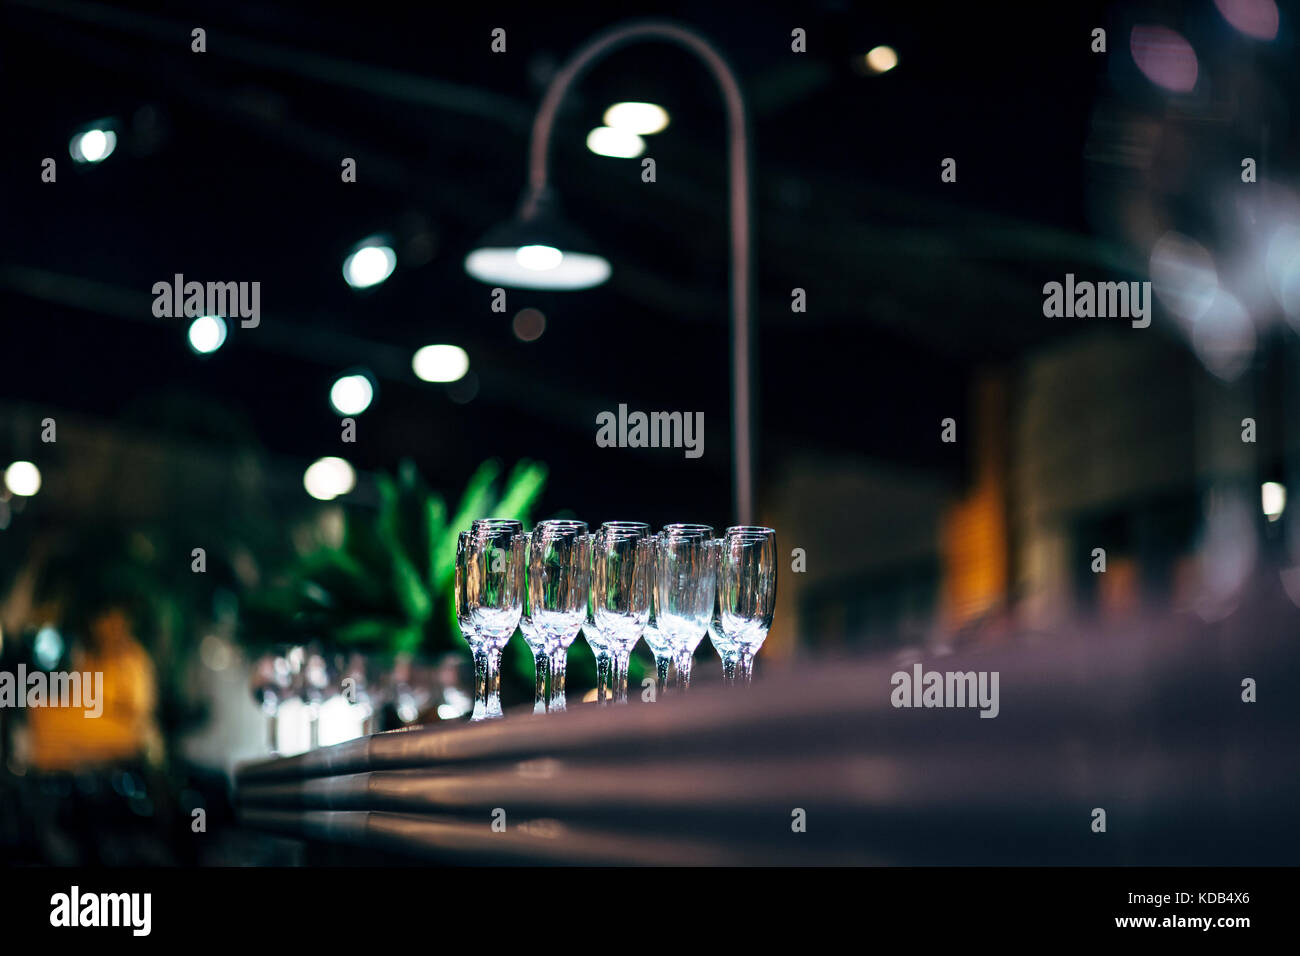 Luxury table settings for fine dining with and glassware beautiful blurred background. Preparation for holiday Christmas and Hannukah dinner night. & Luxury table settings for fine dining with and glassware beautiful ...